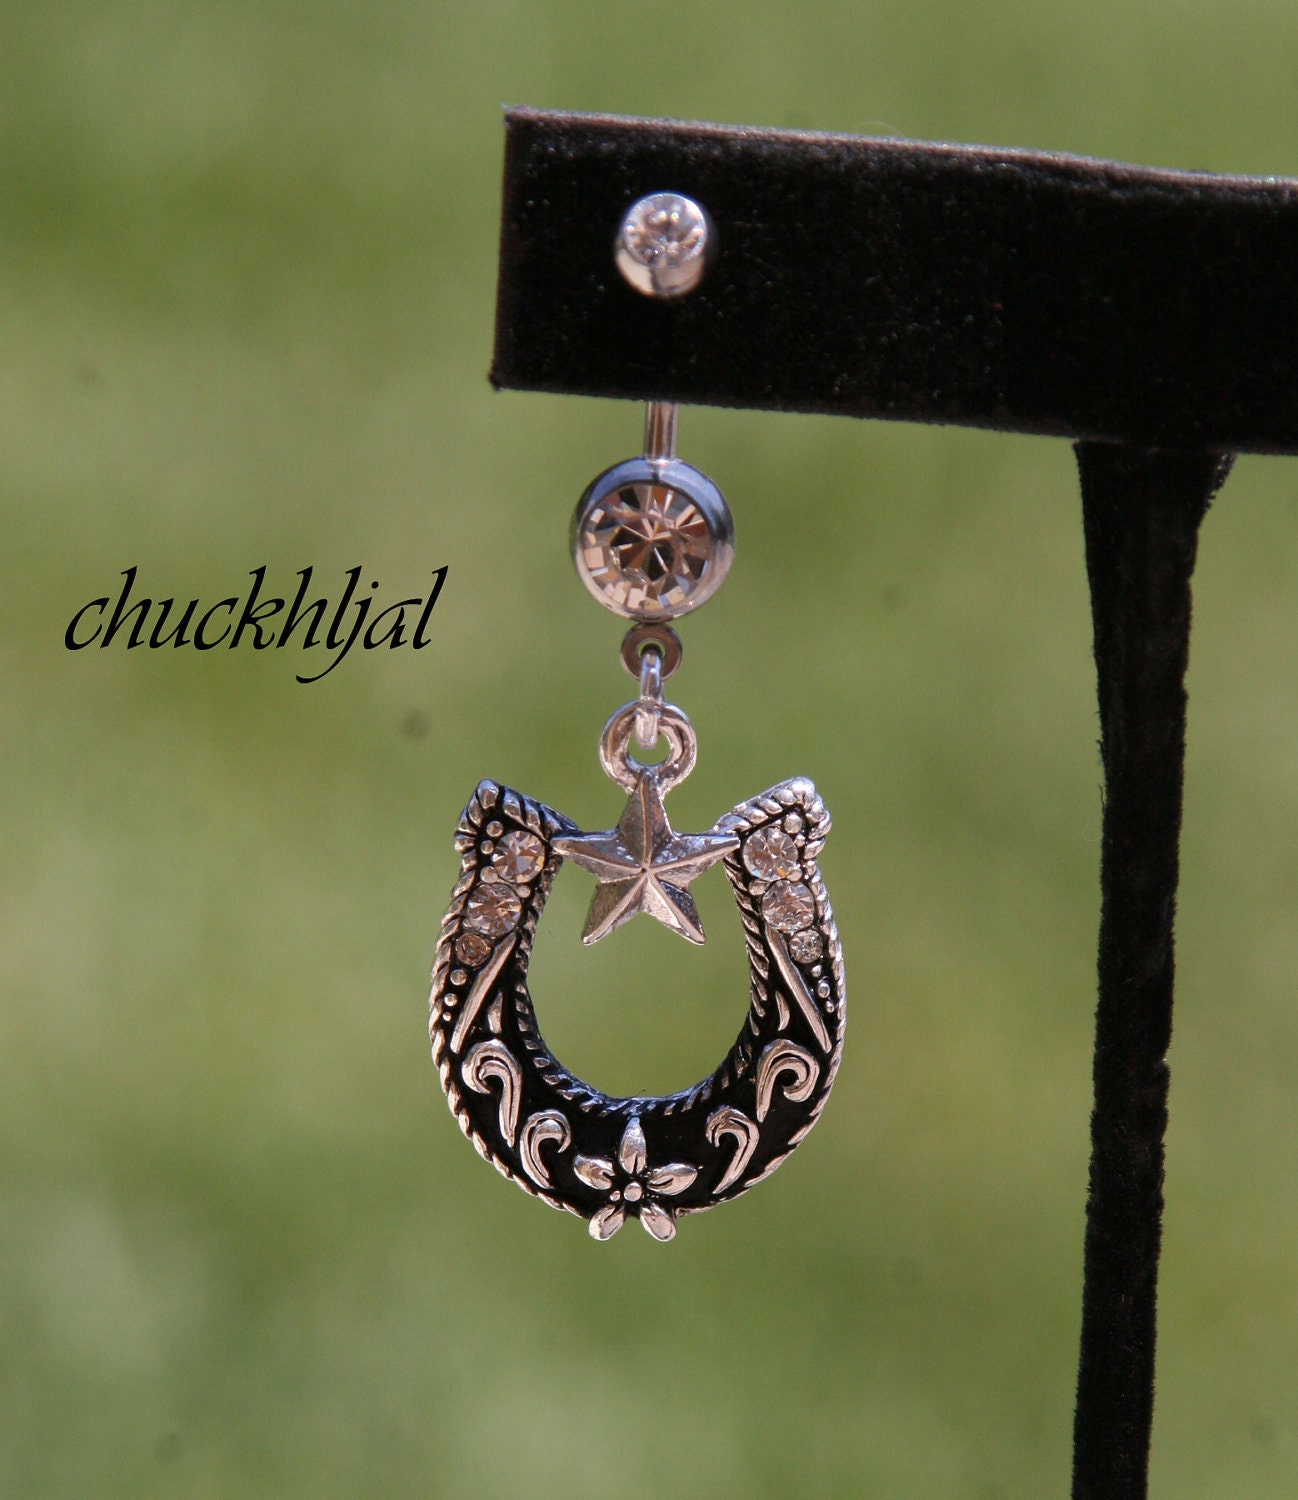 size shoe designer belly button ring by